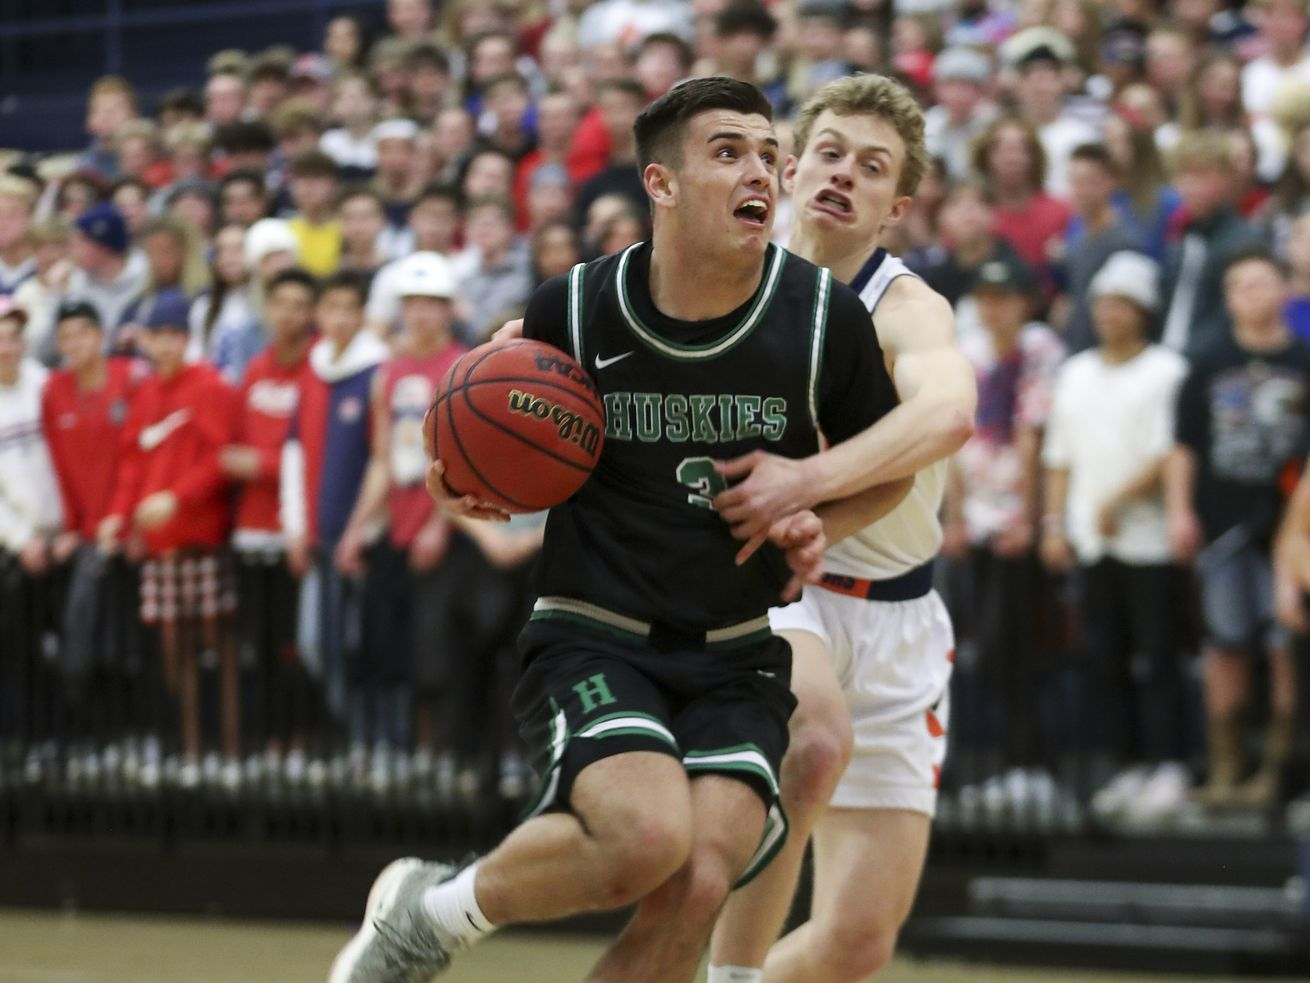 High school boys basketball photos: Balanced effort paces Brighton past rival Hillcrest